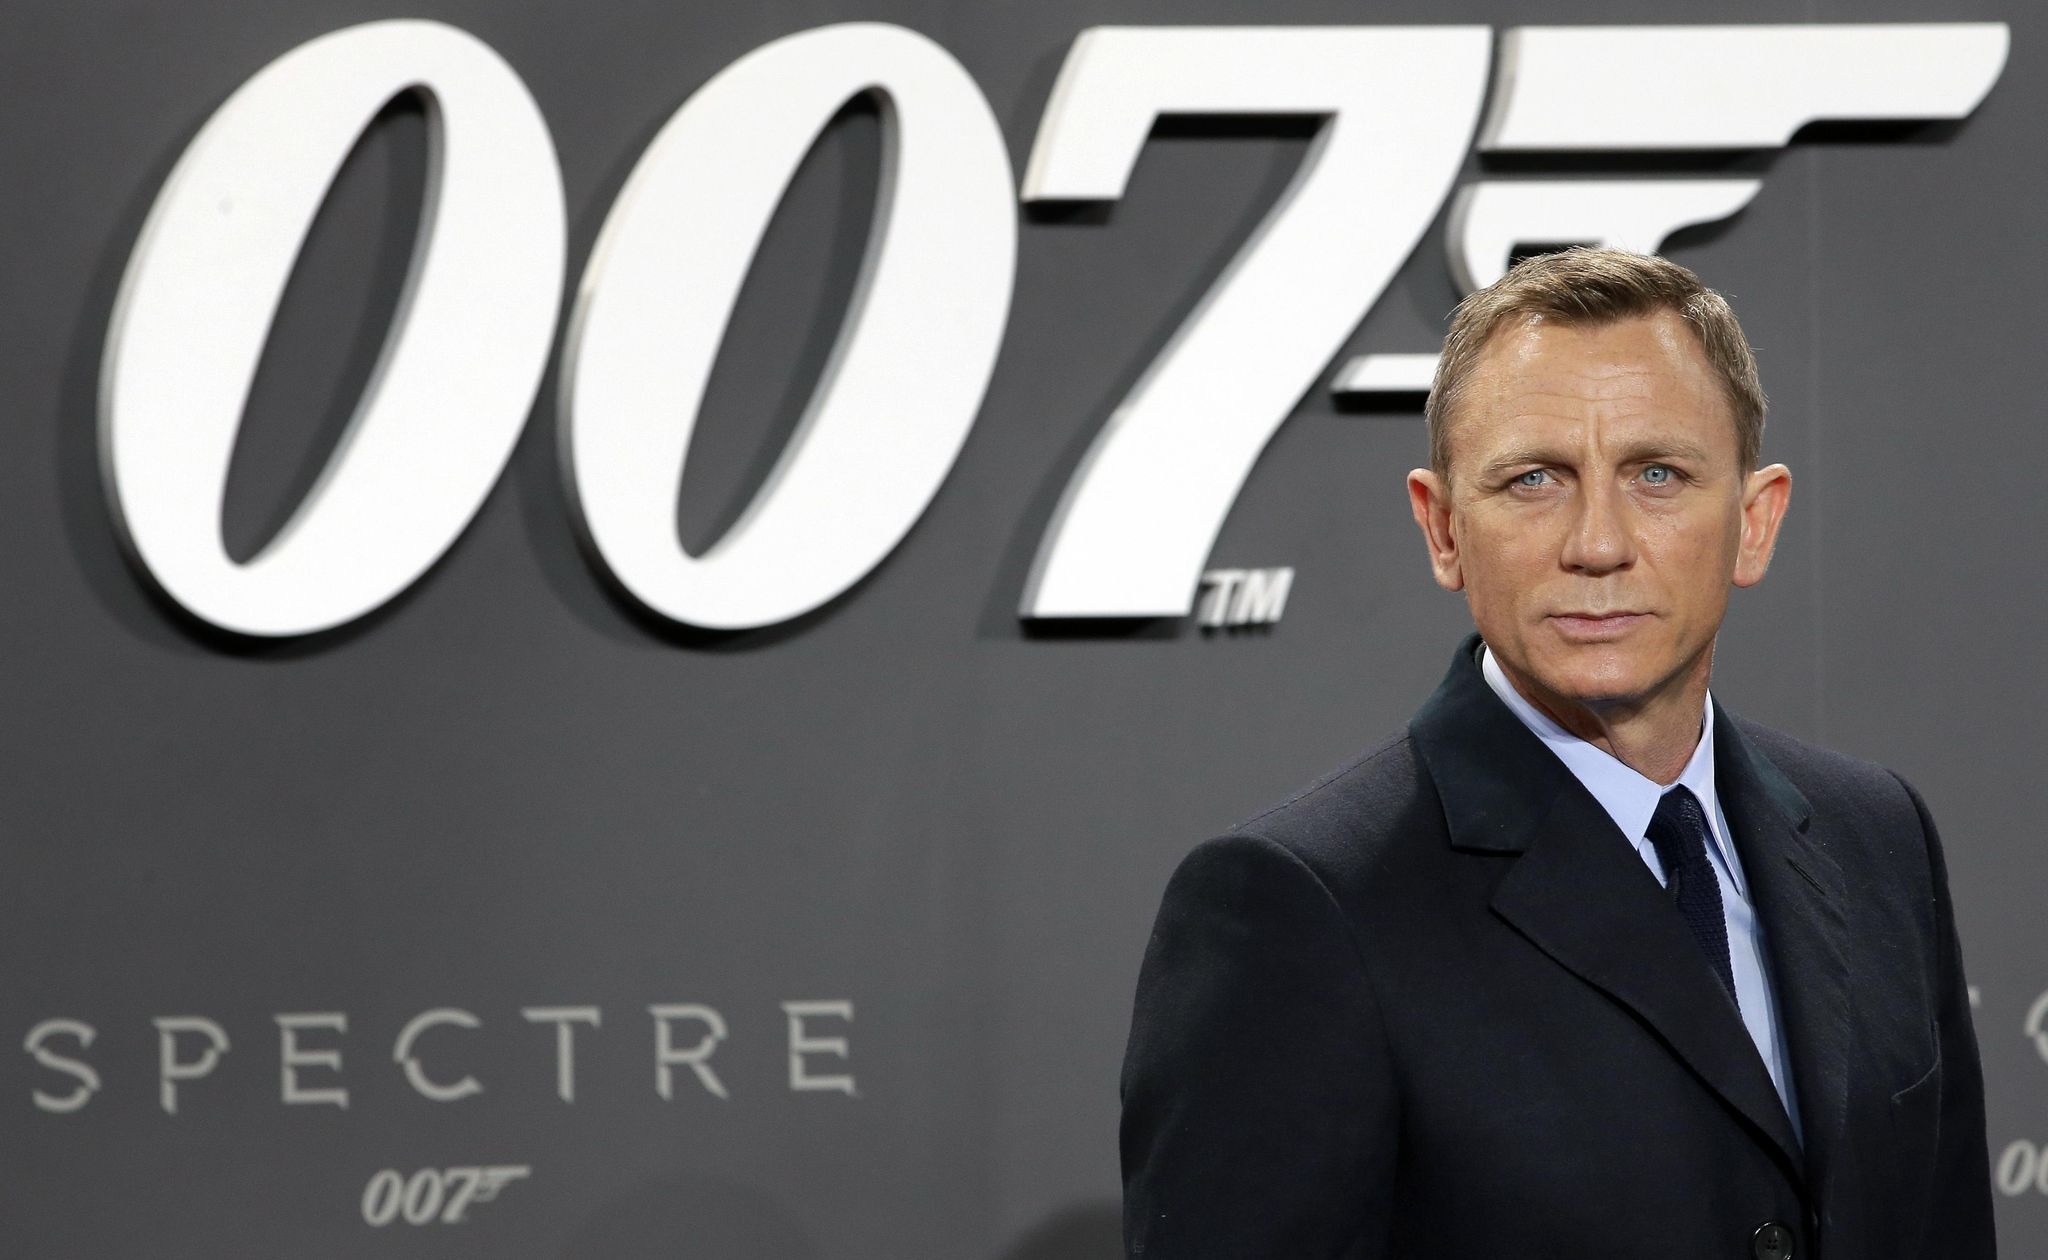 Joe Biden's silly 'James Bond-style' gun control fantasy